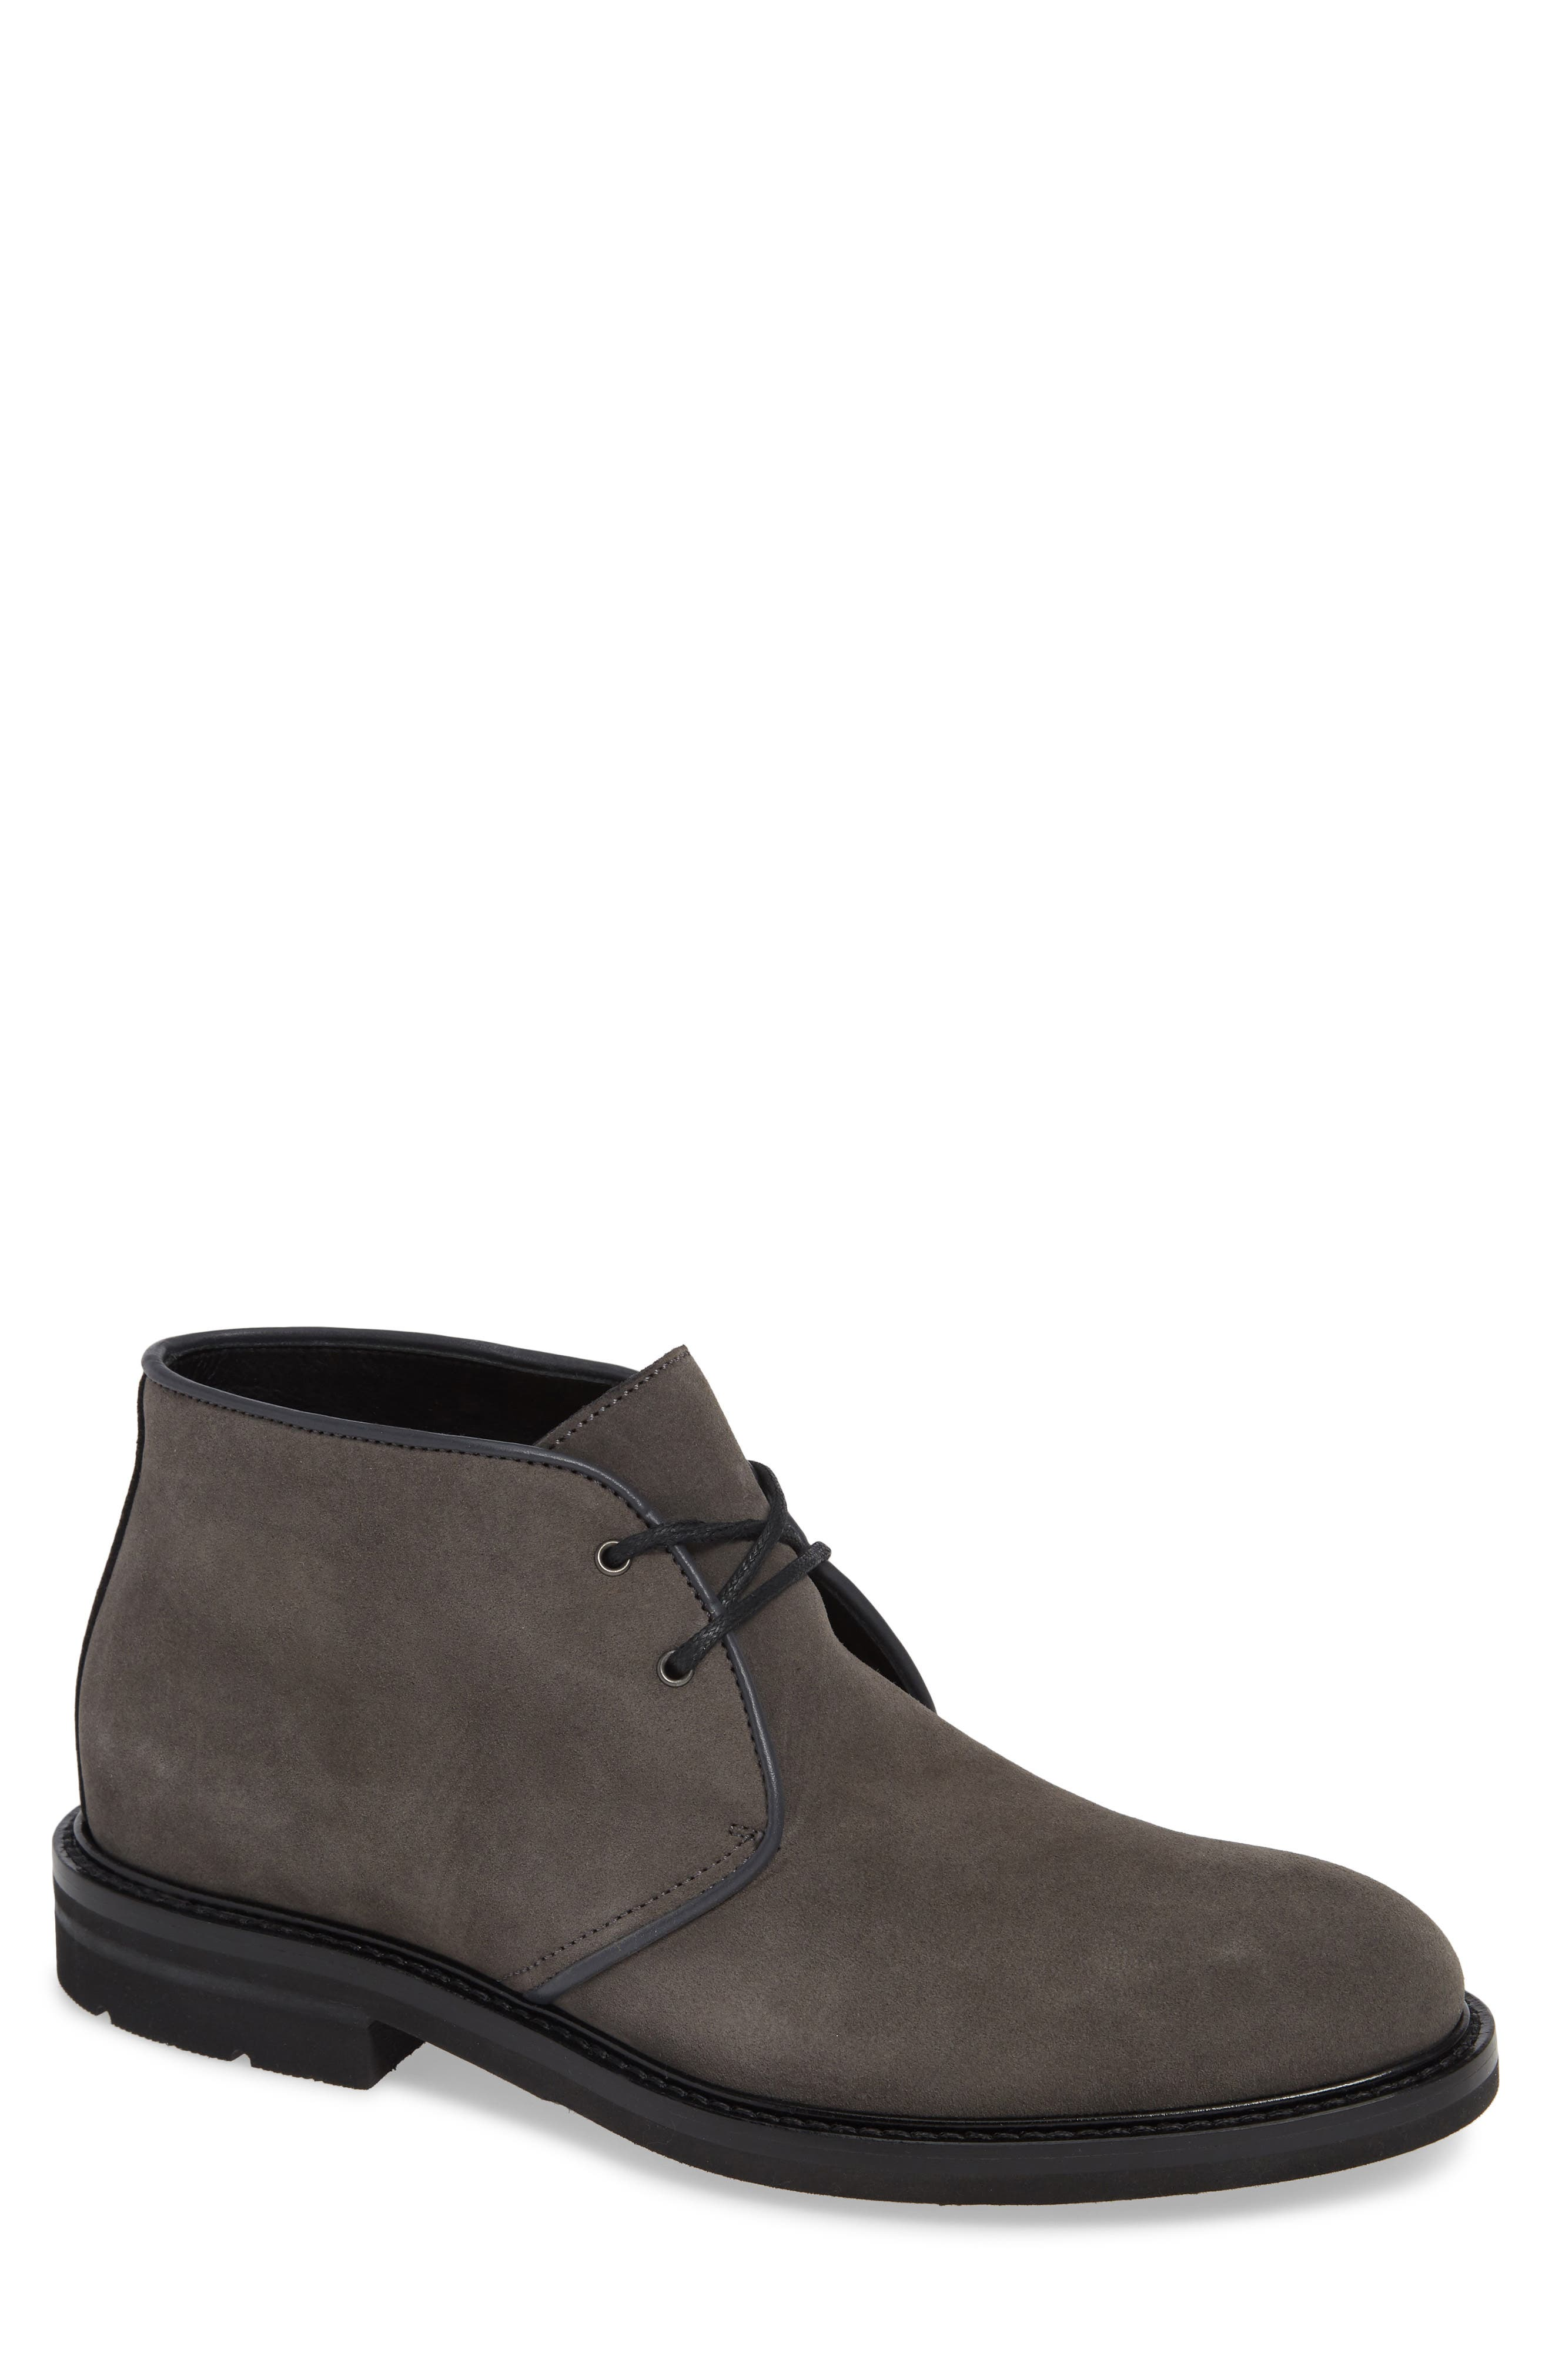 Aquatalia Rinaldo Chukka Water Resistant Boot- Grey